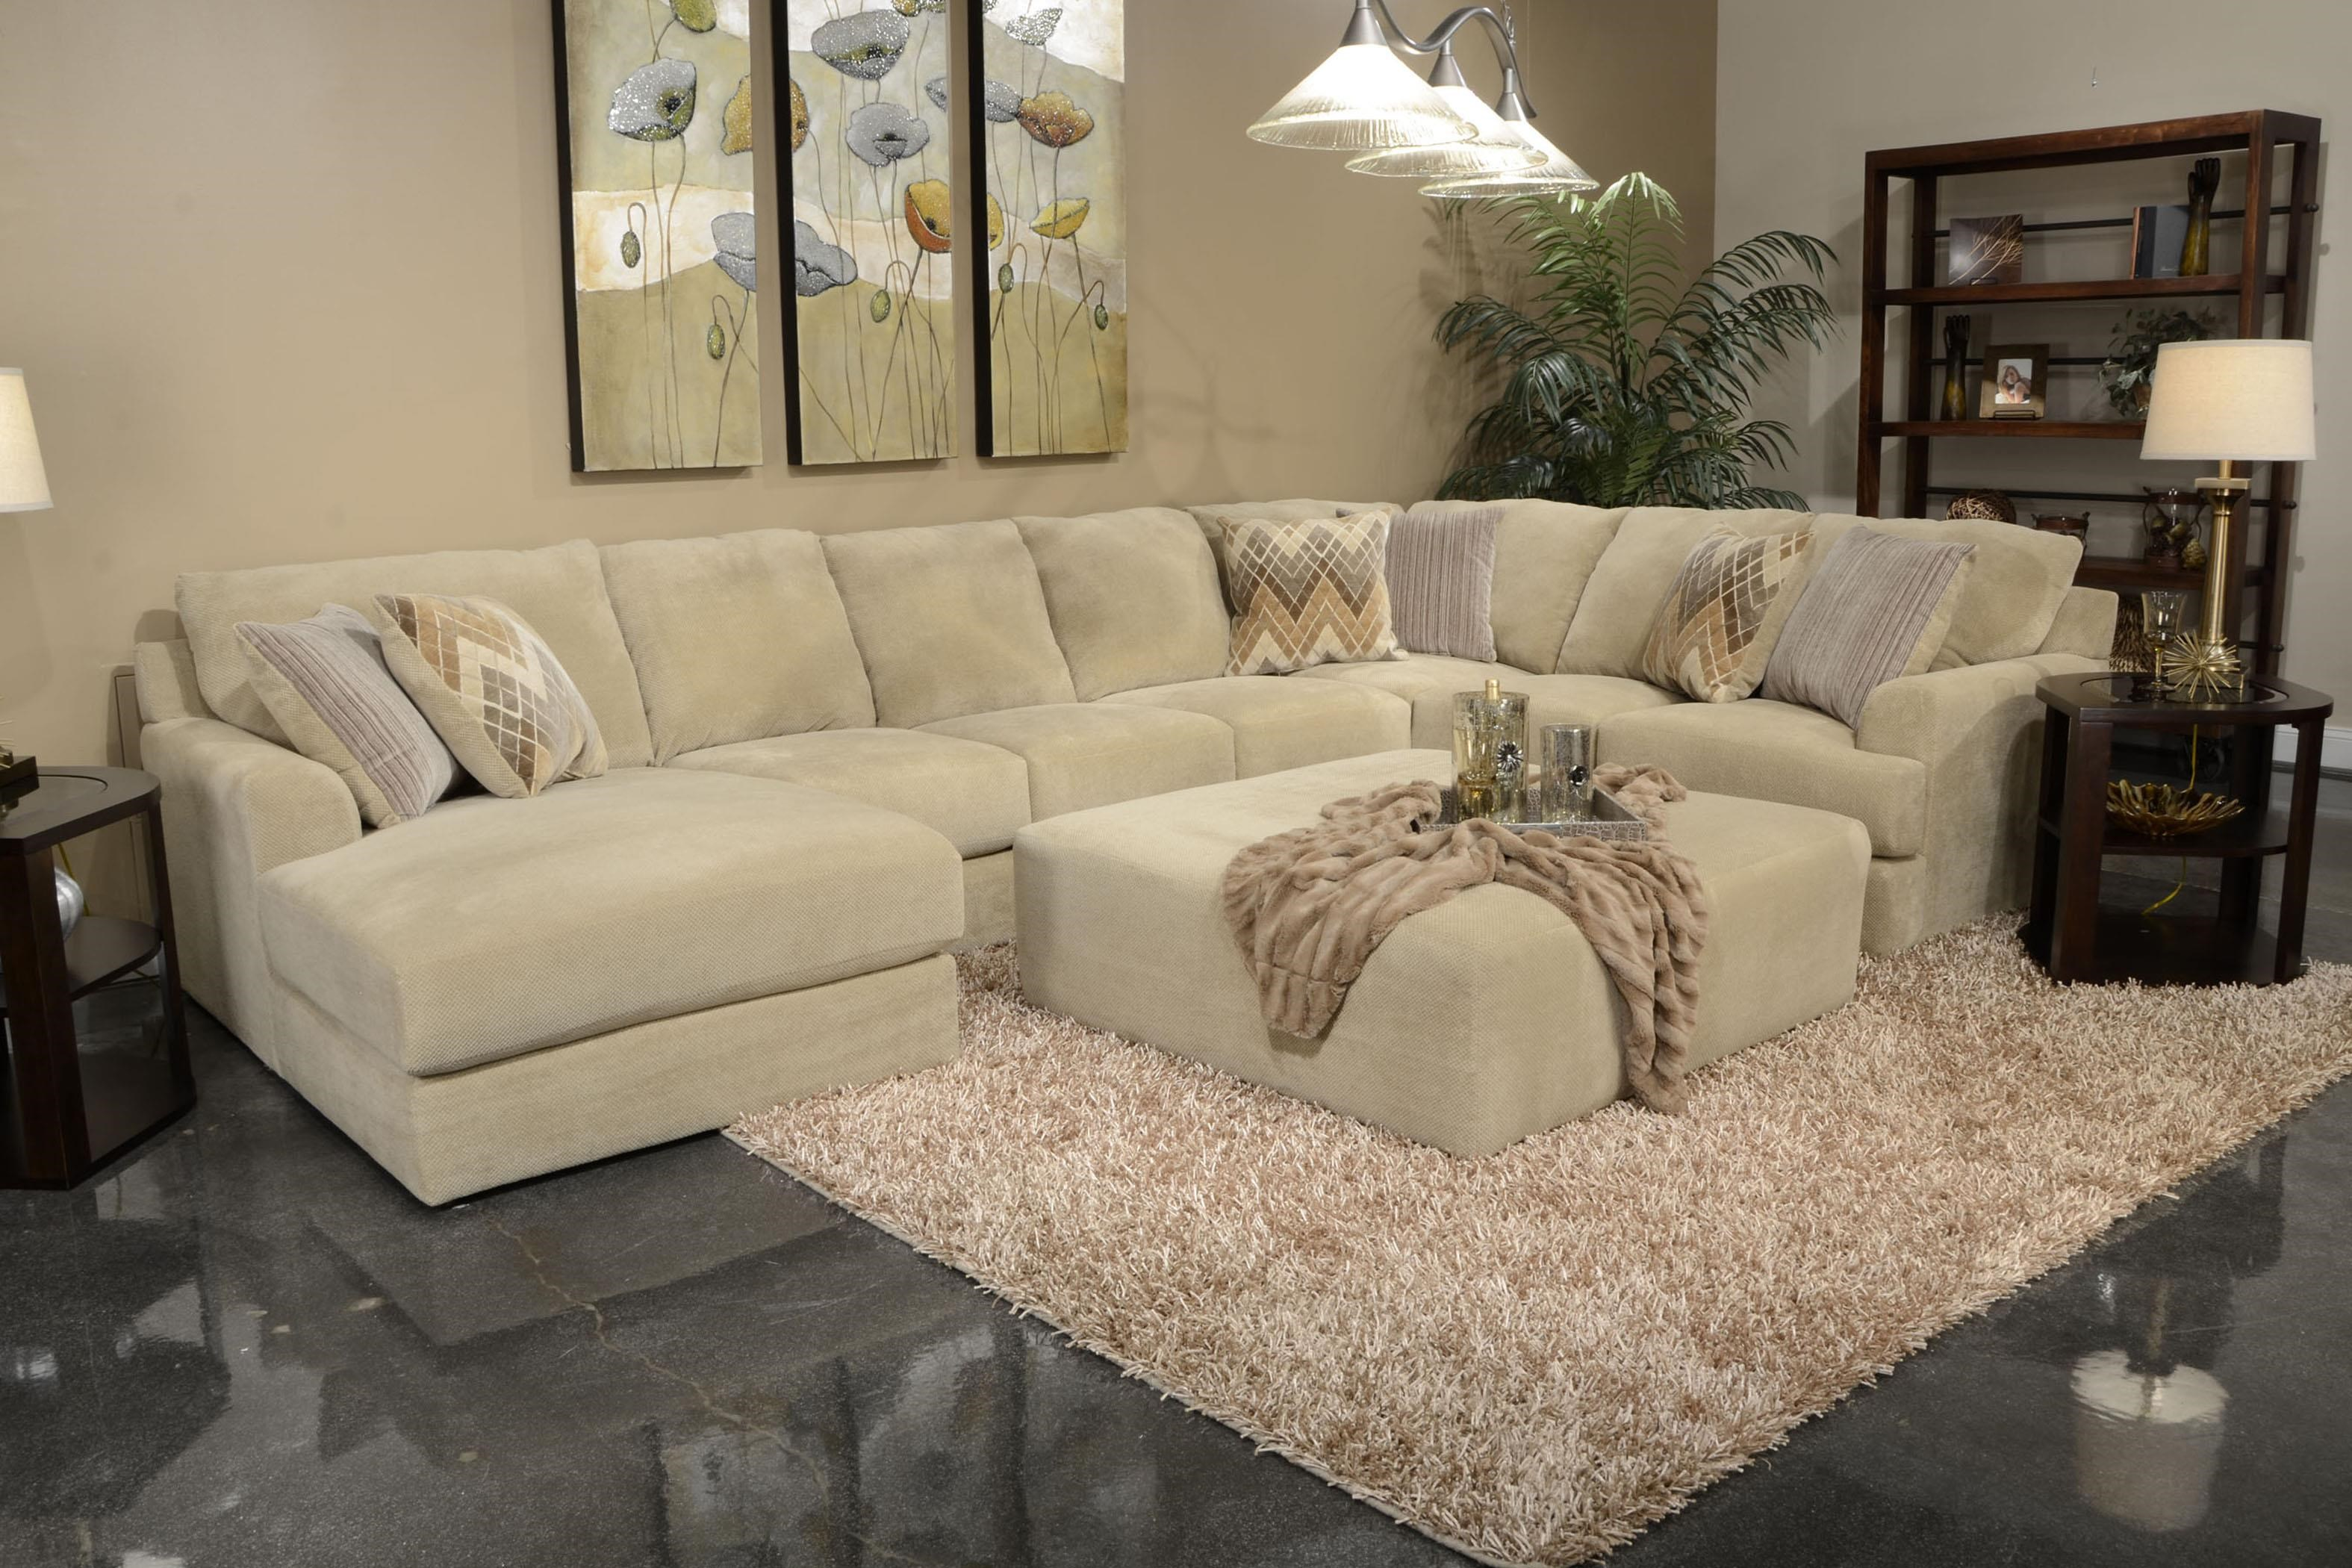 Jackson Furniture Malibu Six Seat Sectional Sofa  sc 1 st  Wayside Furniture : jackson sectional - Sectionals, Sofas & Couches